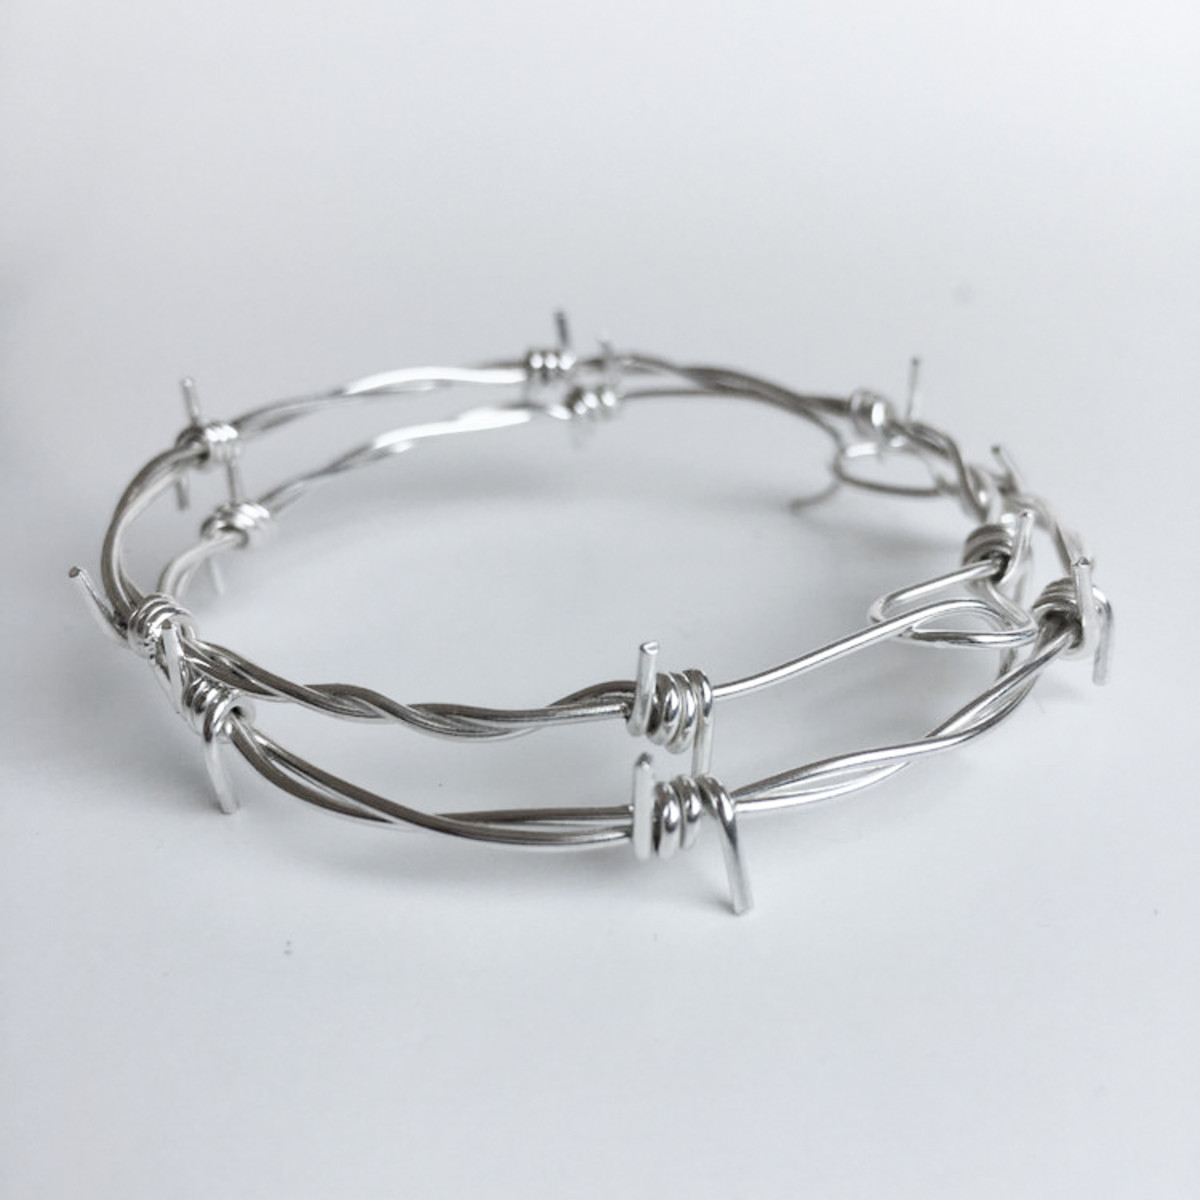 Large barbed wire hoops, $123, available here.